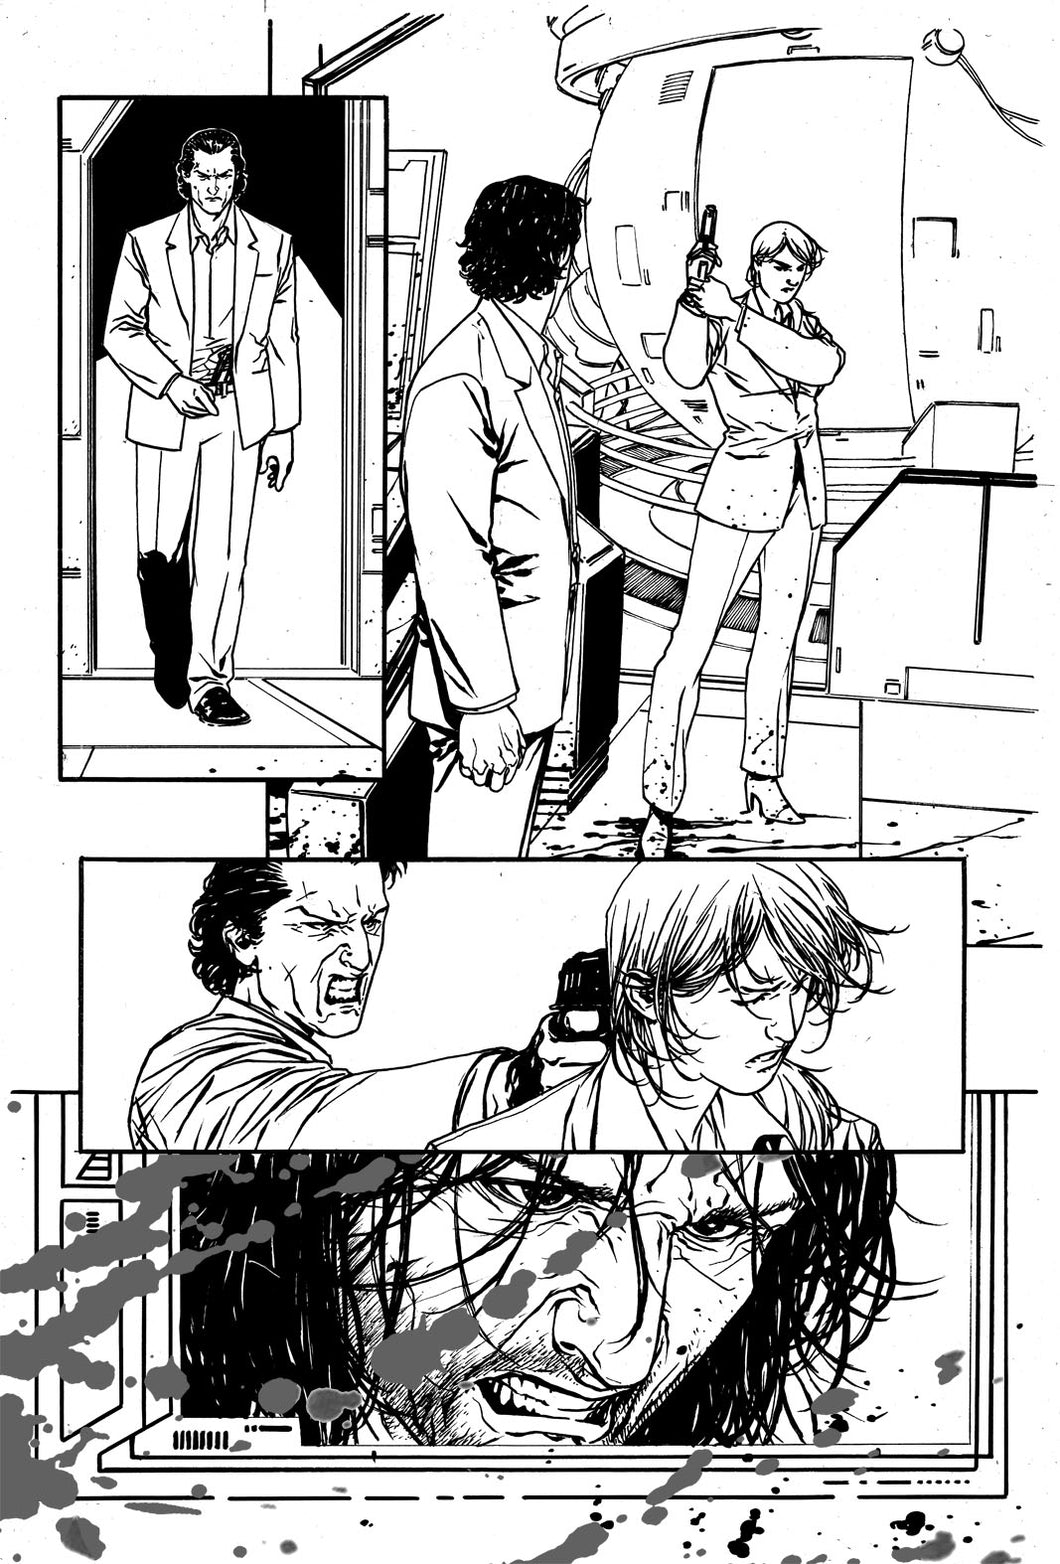 Hardcore #1 Original art - Page 20 by Alessandro Vitti